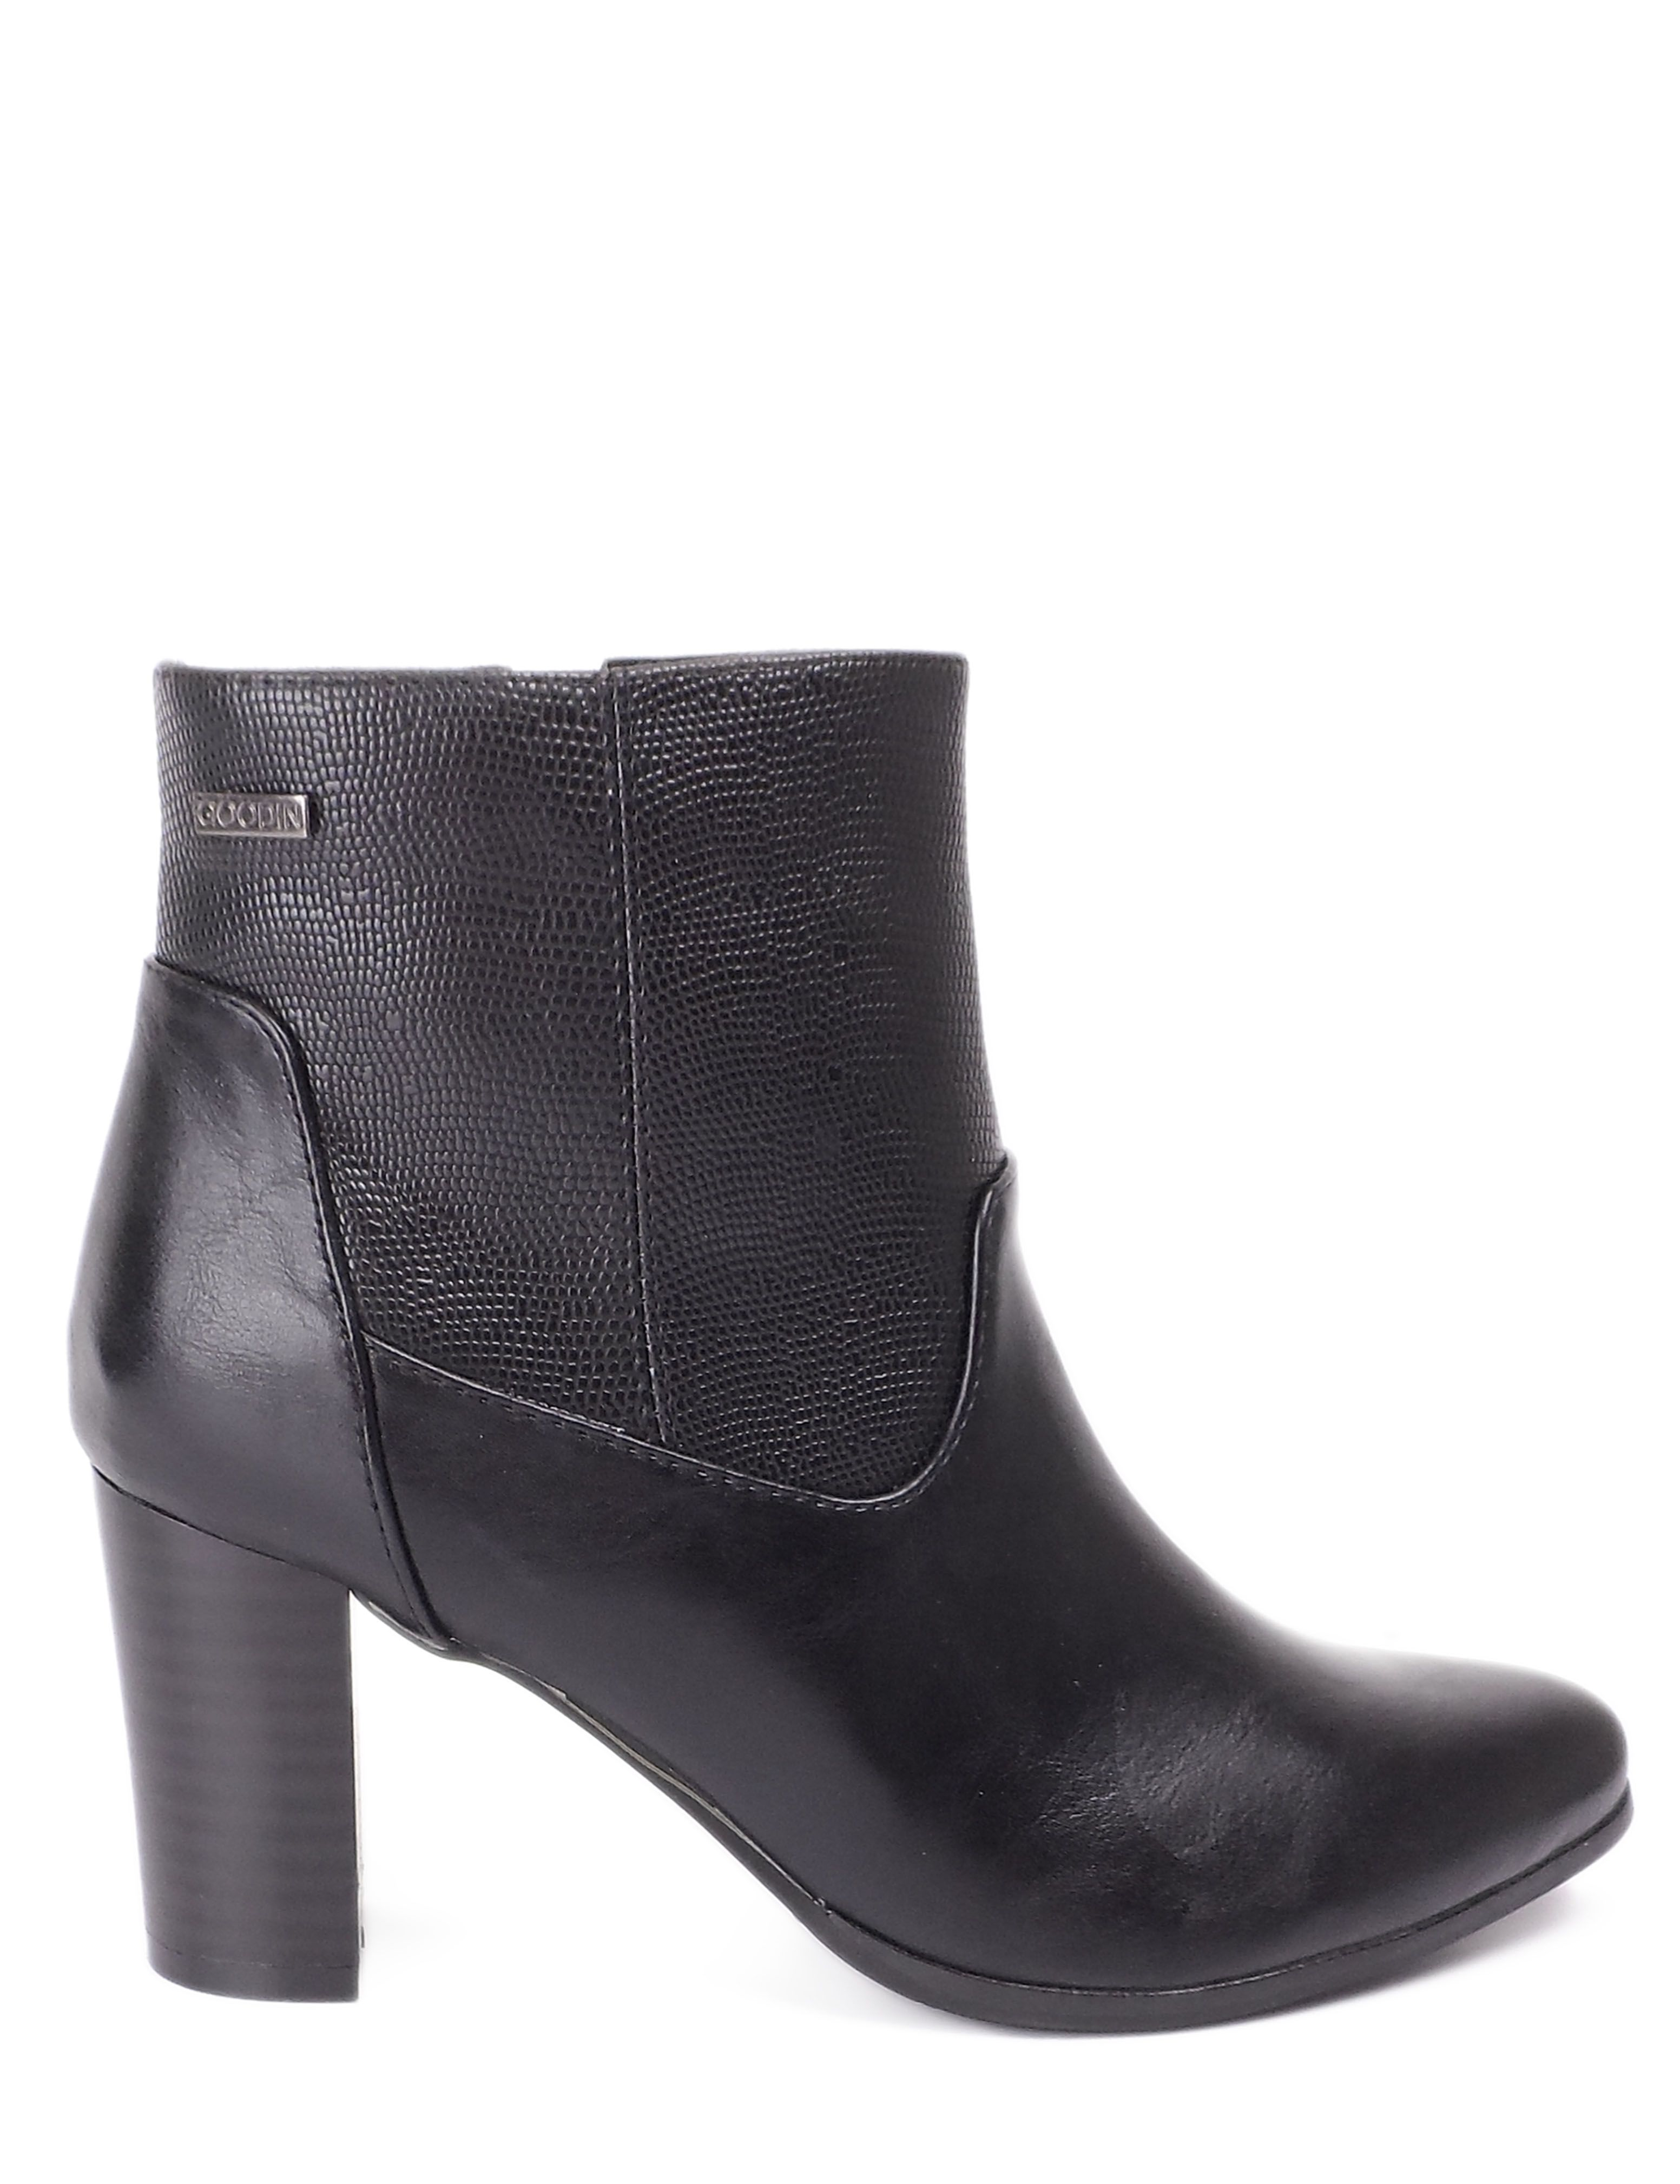 Pin By Albero Buty On New Collection Autumn 2015 Boots Ankle Boot Shoes